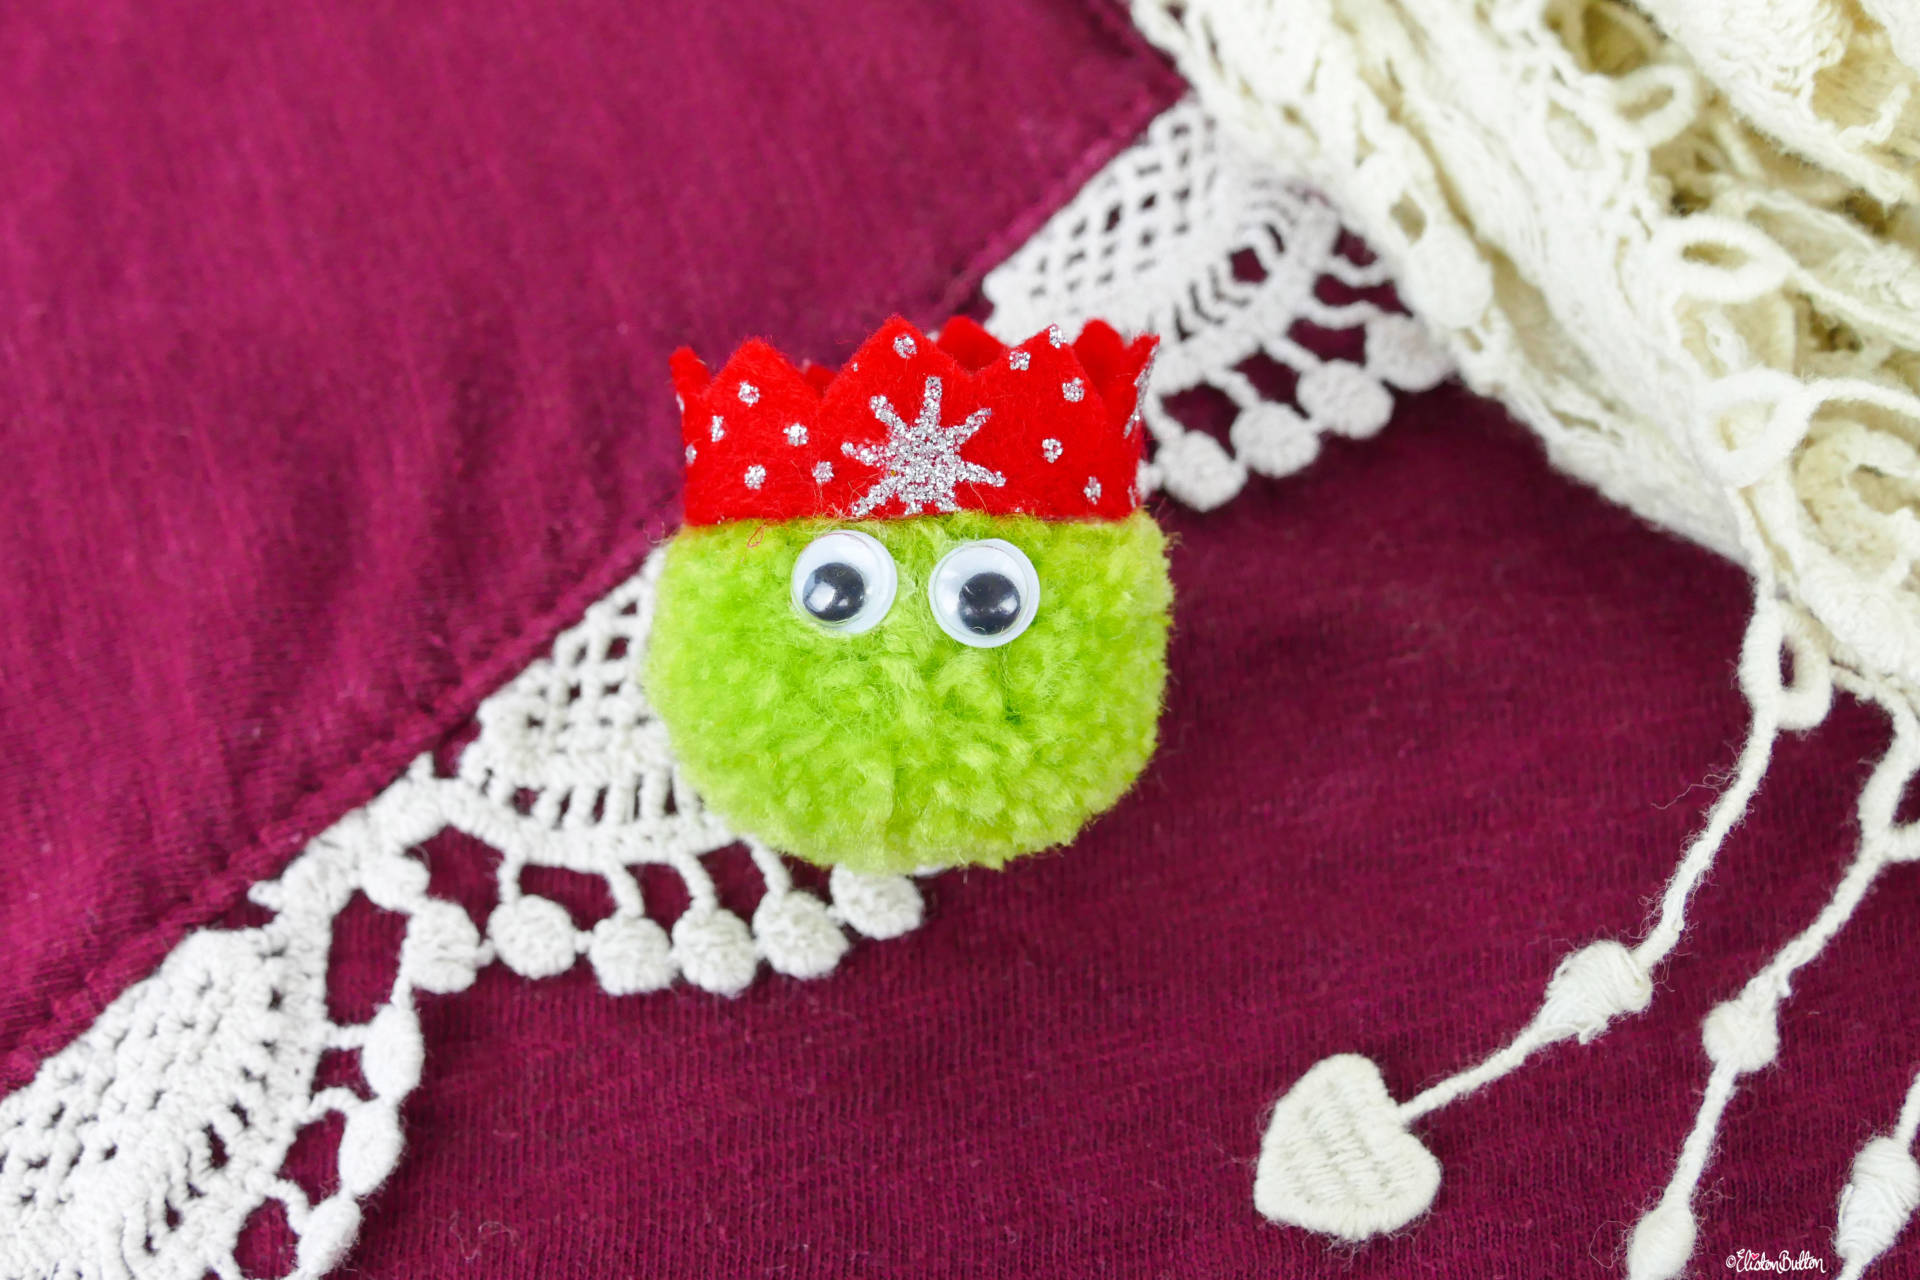 Light Green Christmas Sprout Pom Pom Brooch with Red Glitter Party Hat on a Christmas Jumper by Eliston Button - Christmas Sprout Pom Pom Brooches! at www.elistonbutton.com - Eliston Button - That Crafty Kid – Art, Design, Craft & Adventure.